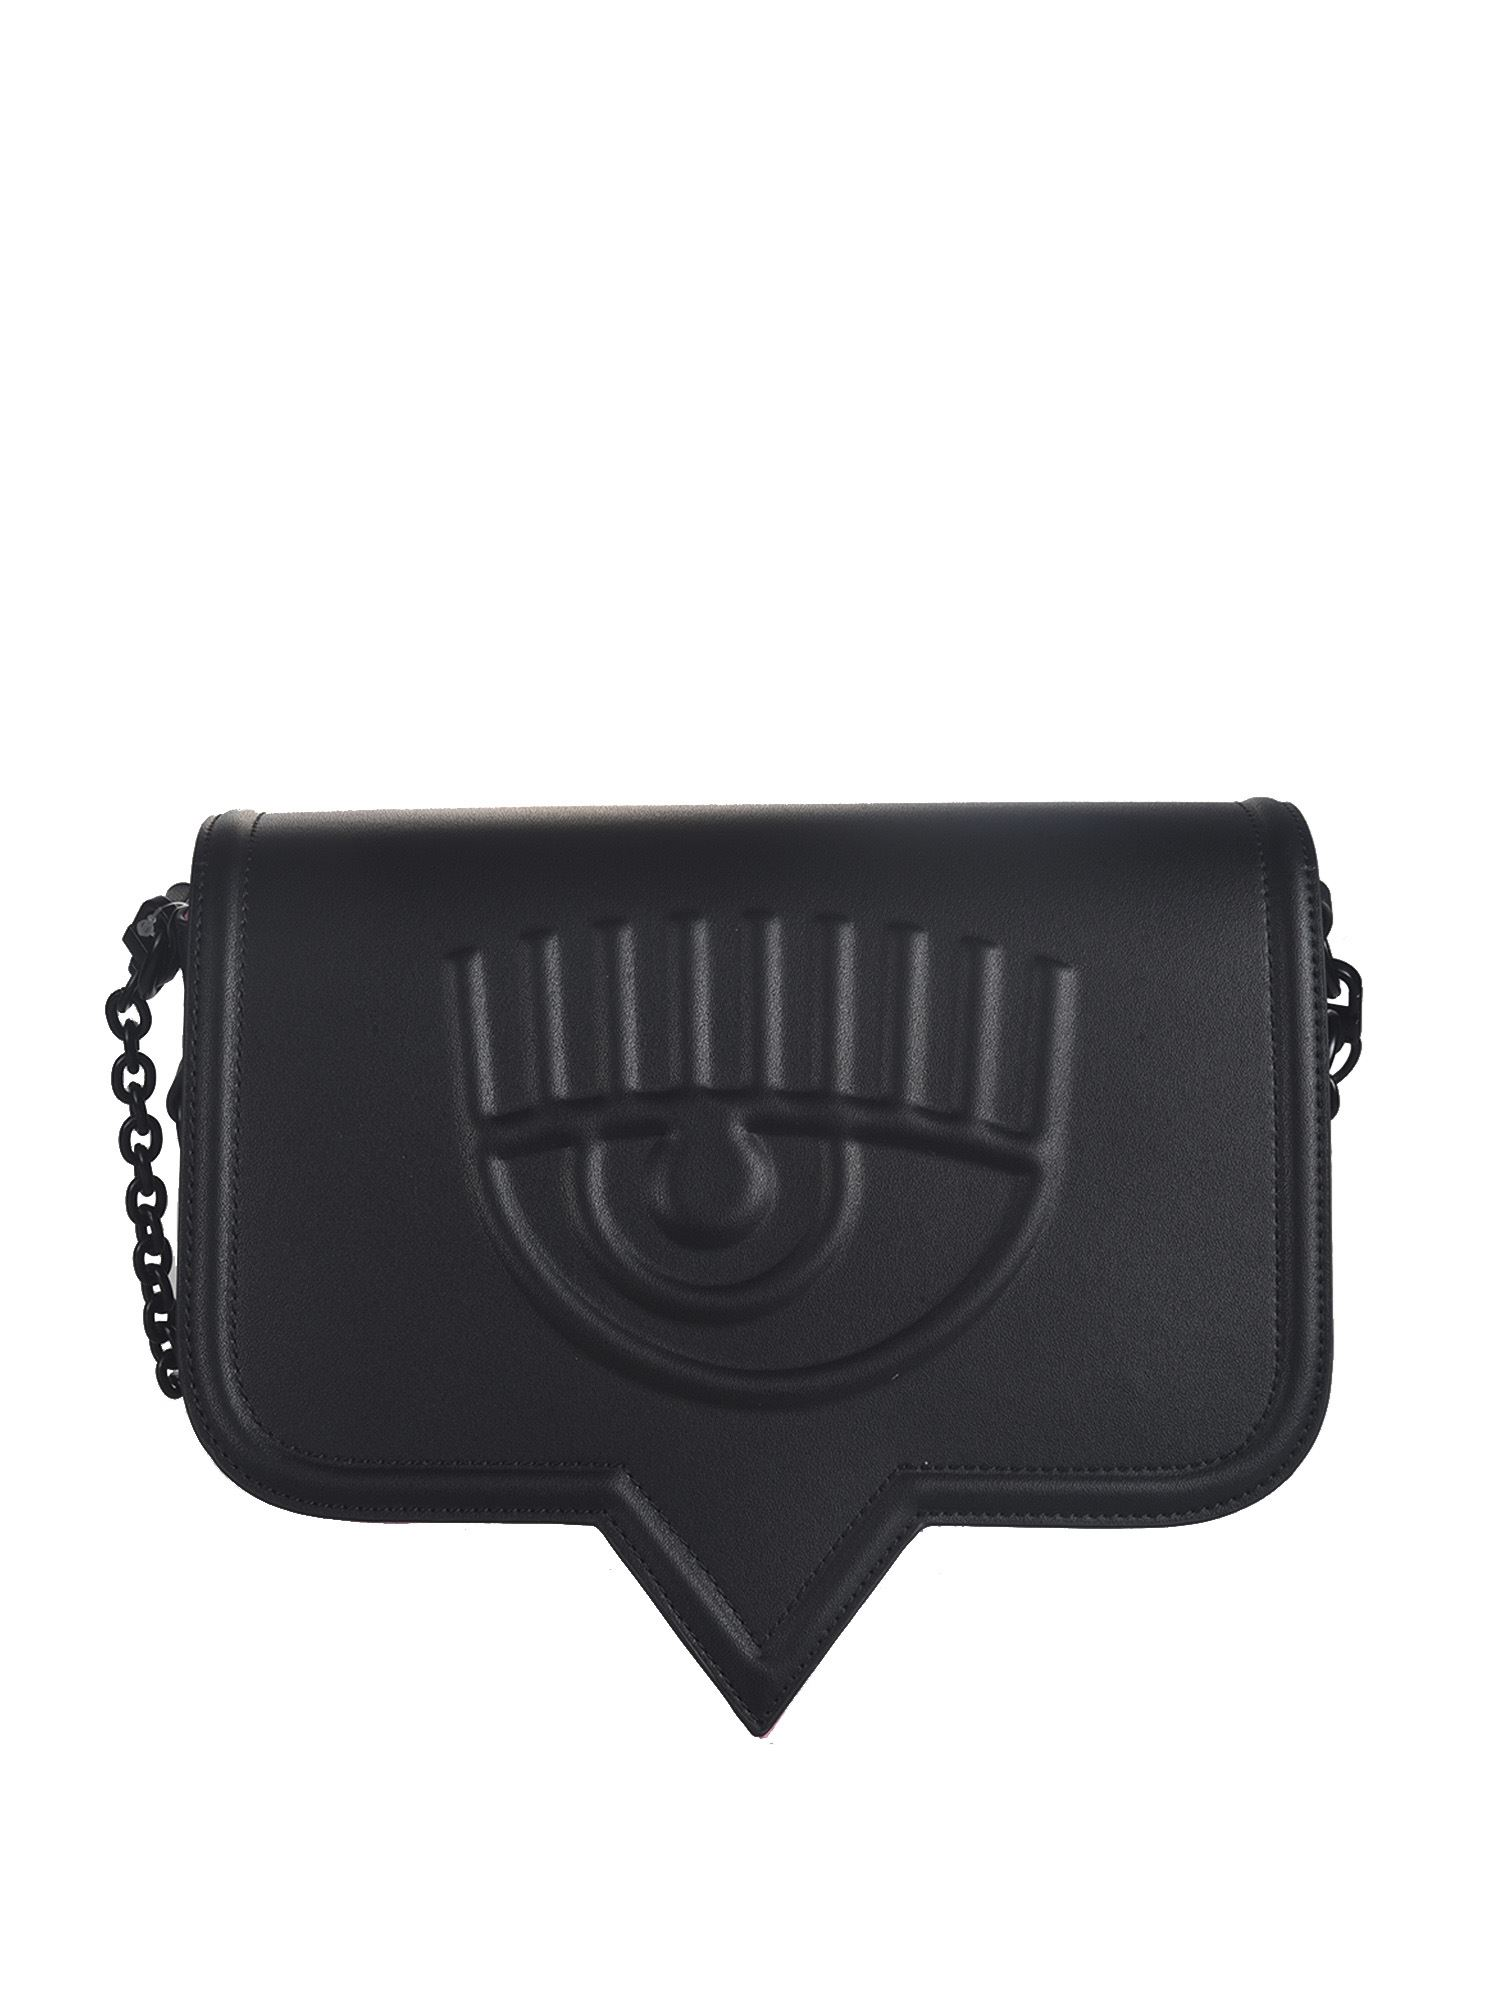 Chiara Ferragni EYELIKE BIG SHOULDER BAG IN BLACK